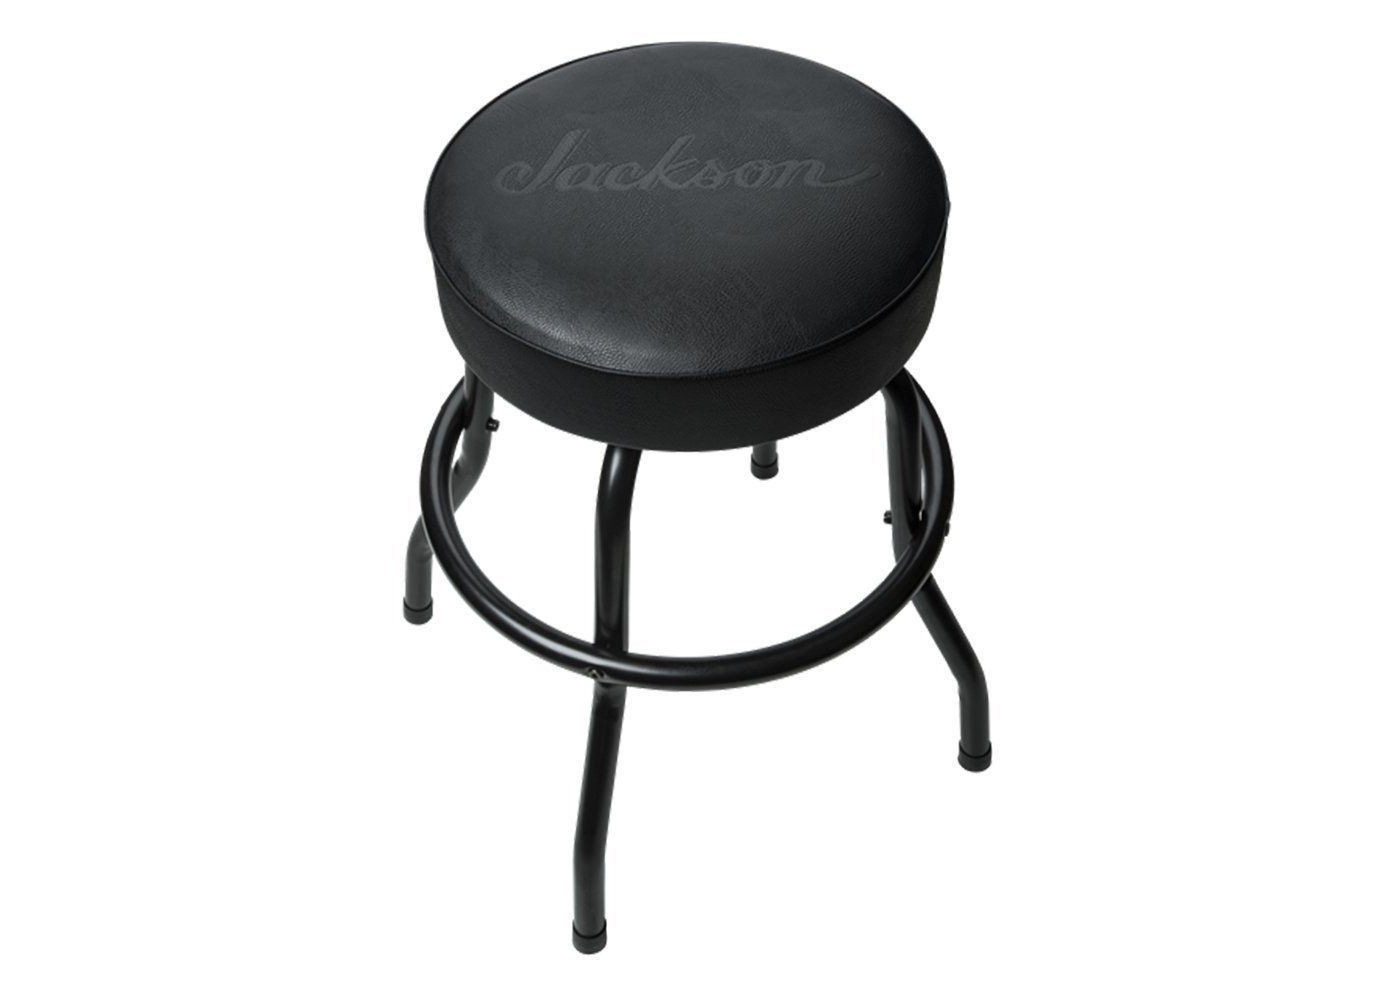 Jackson Guitars 24 Quot Black Logo Bar Stool Vinyl Padding